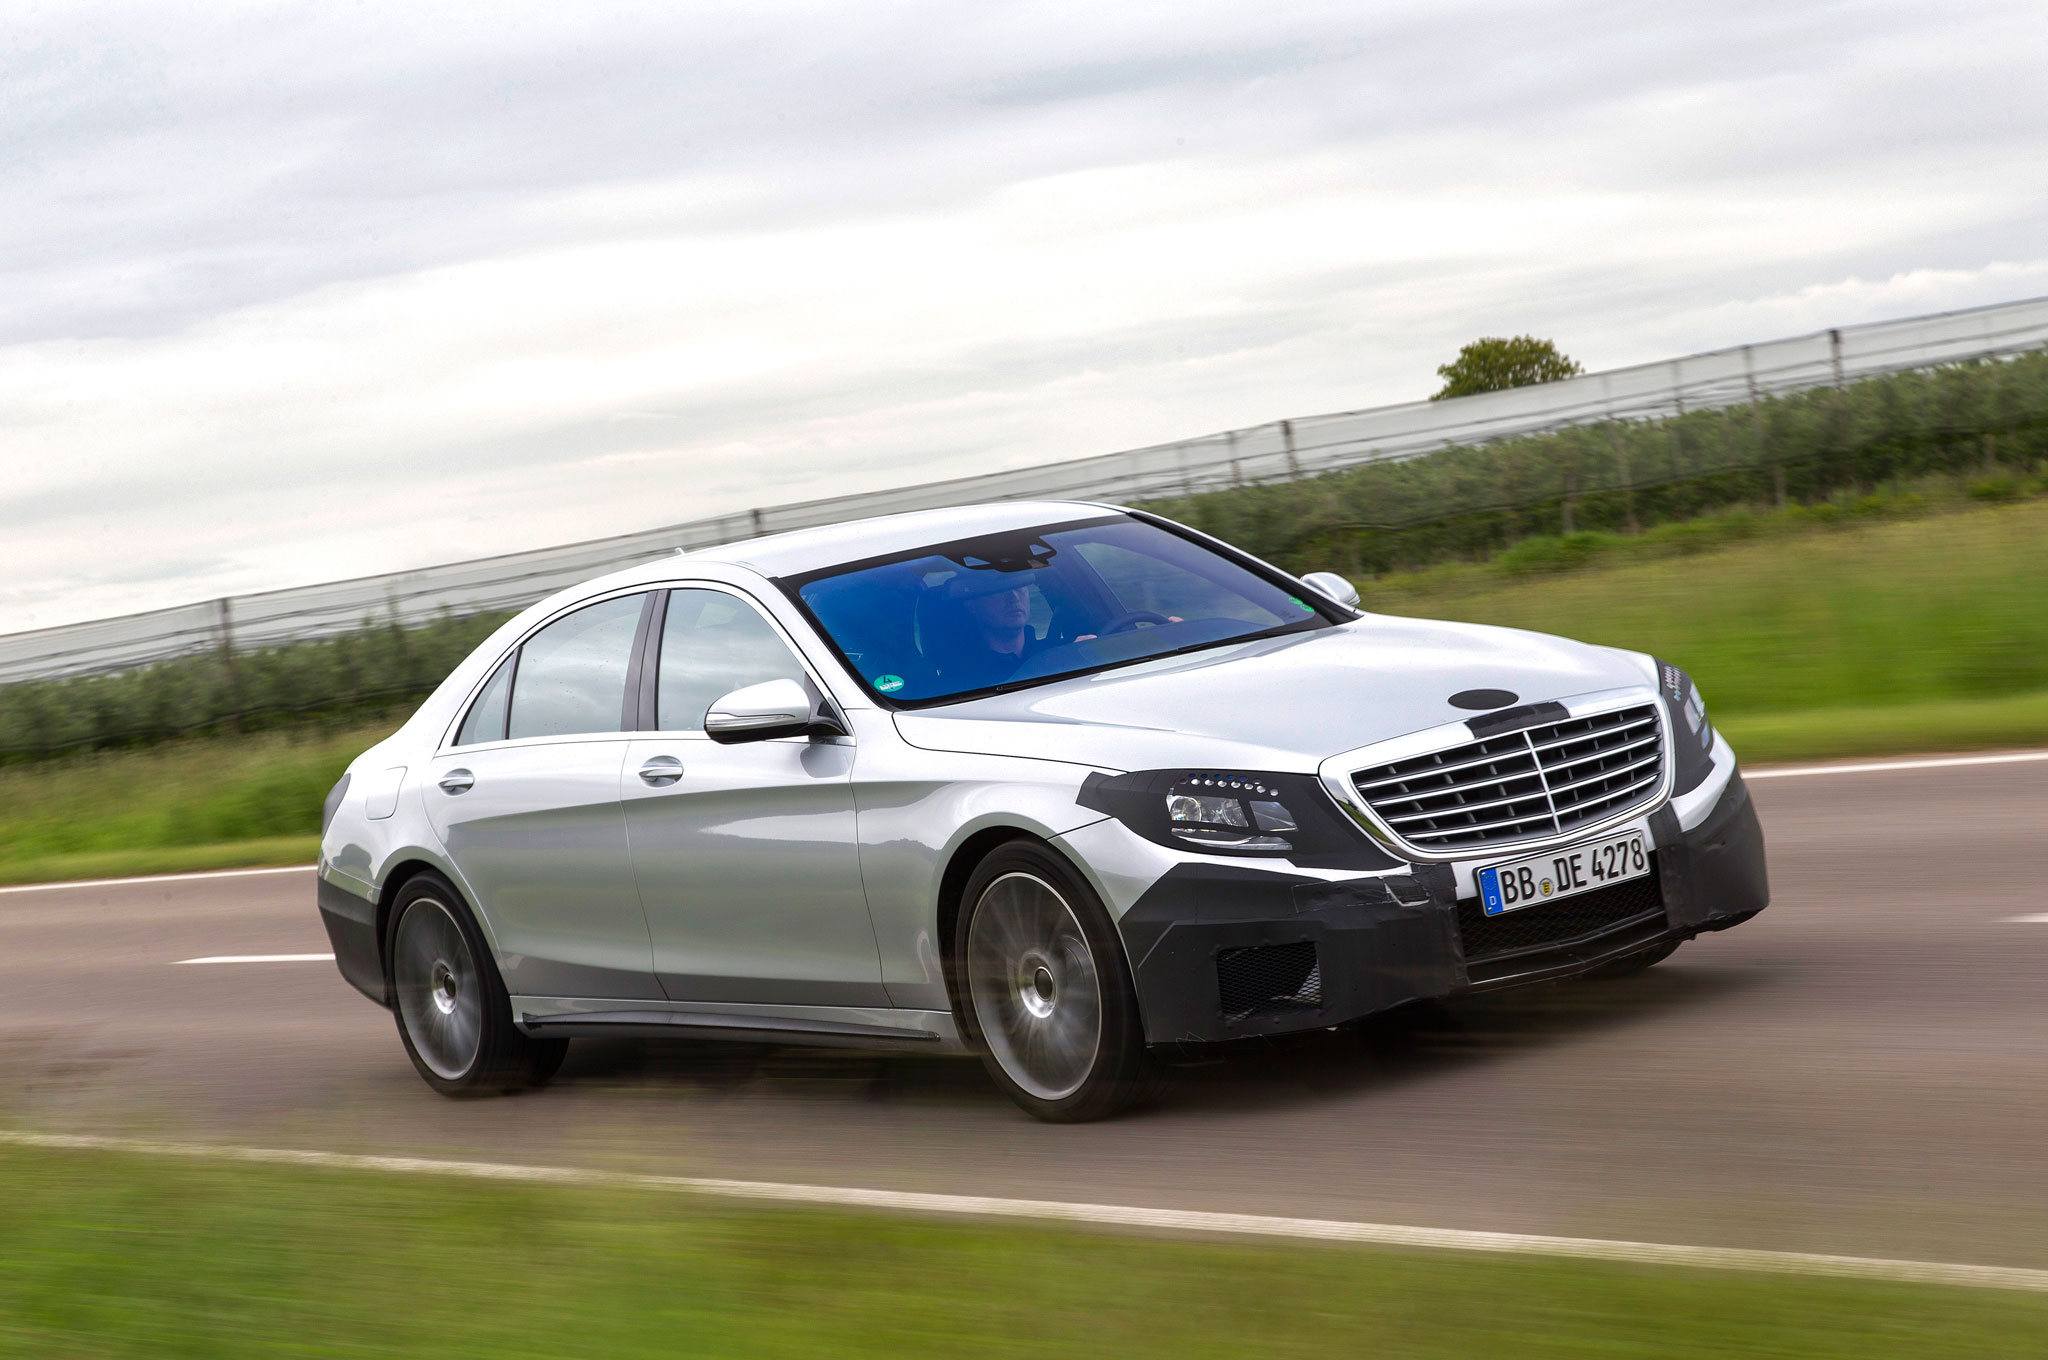 2014 Mercedes Benz S63 AMG 4Matic Front Right Side View 31